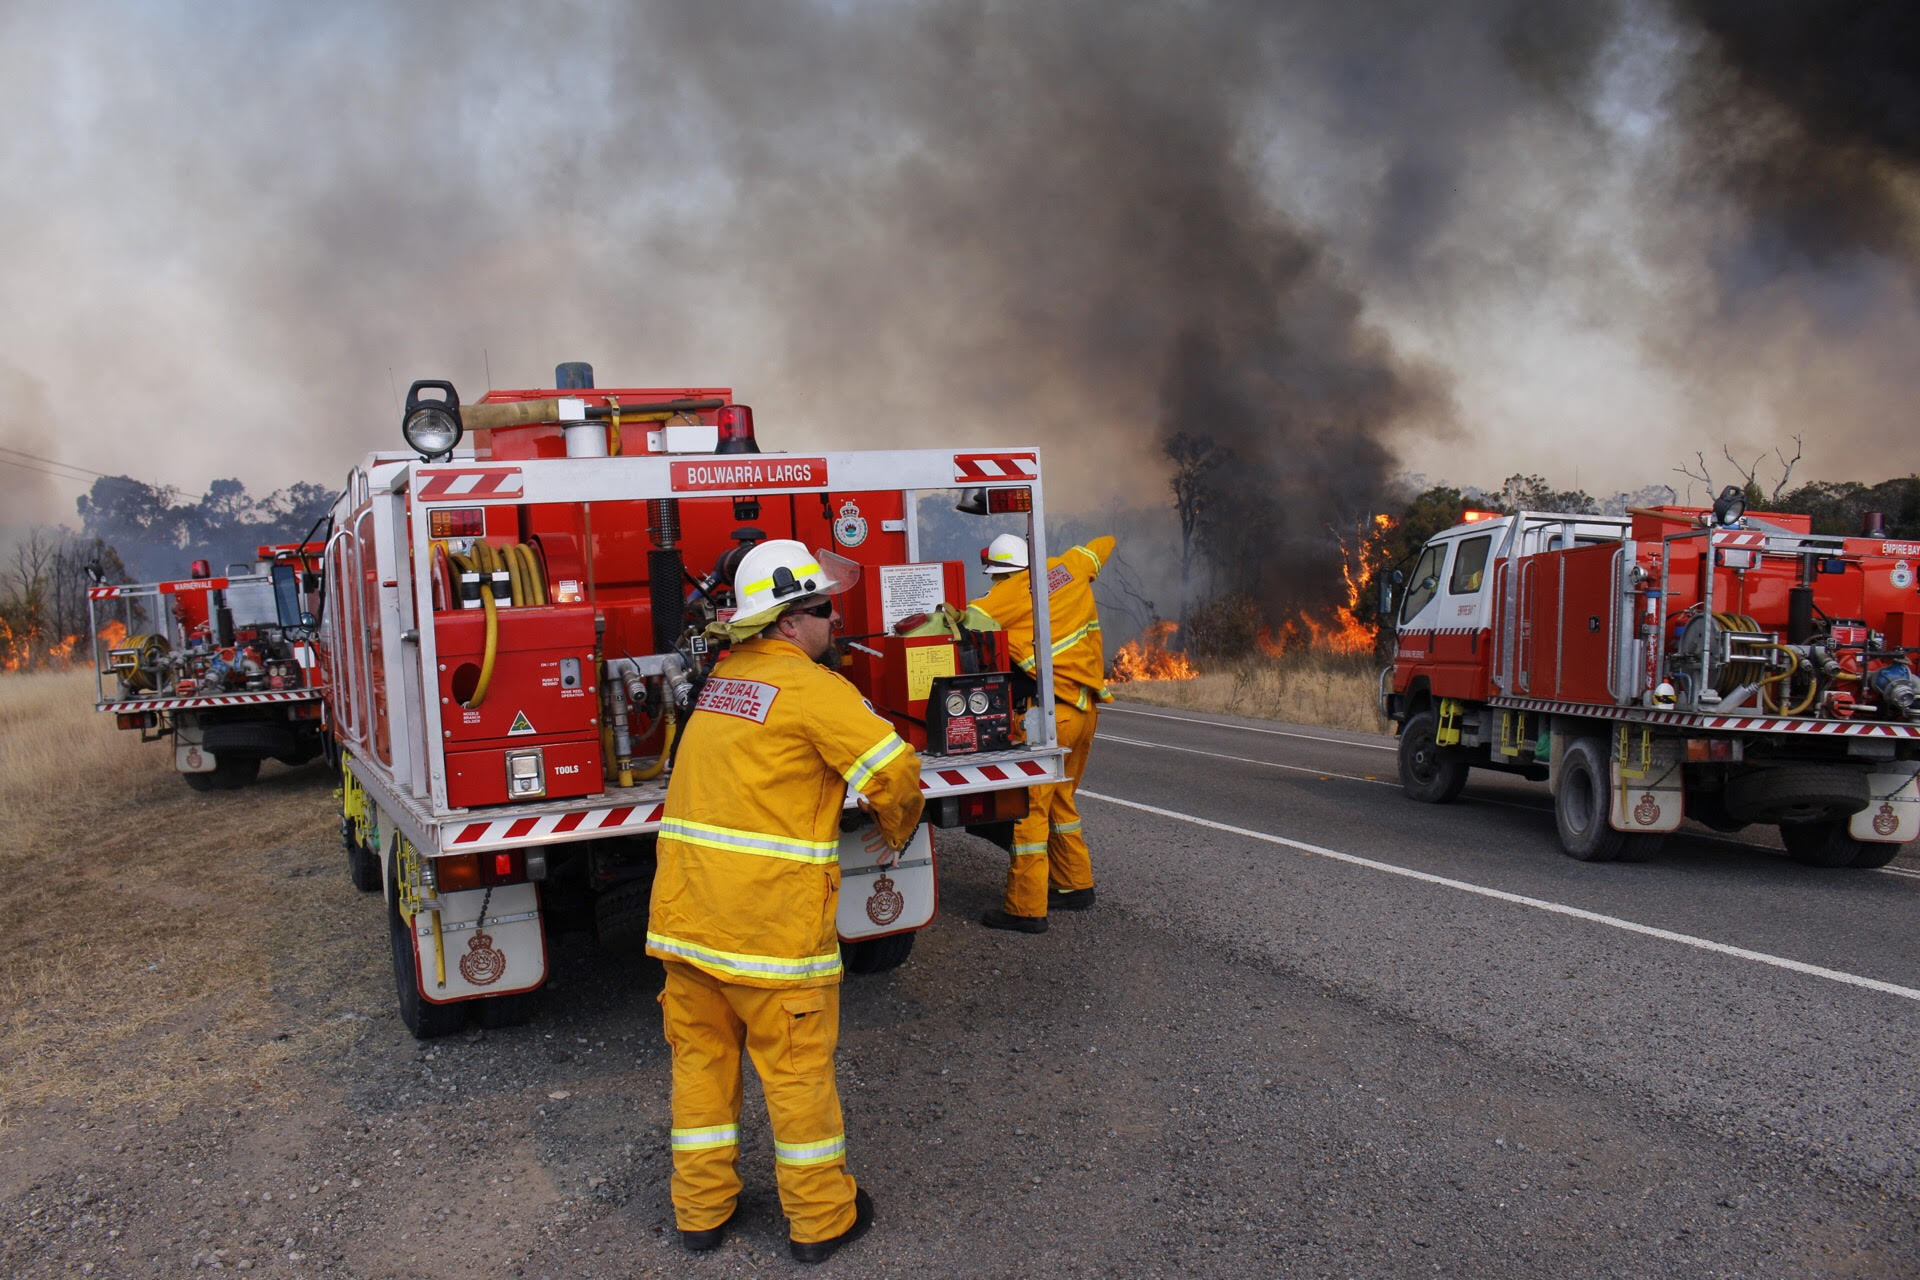 Crews are working to mop up spot fires in the area. (AAP)